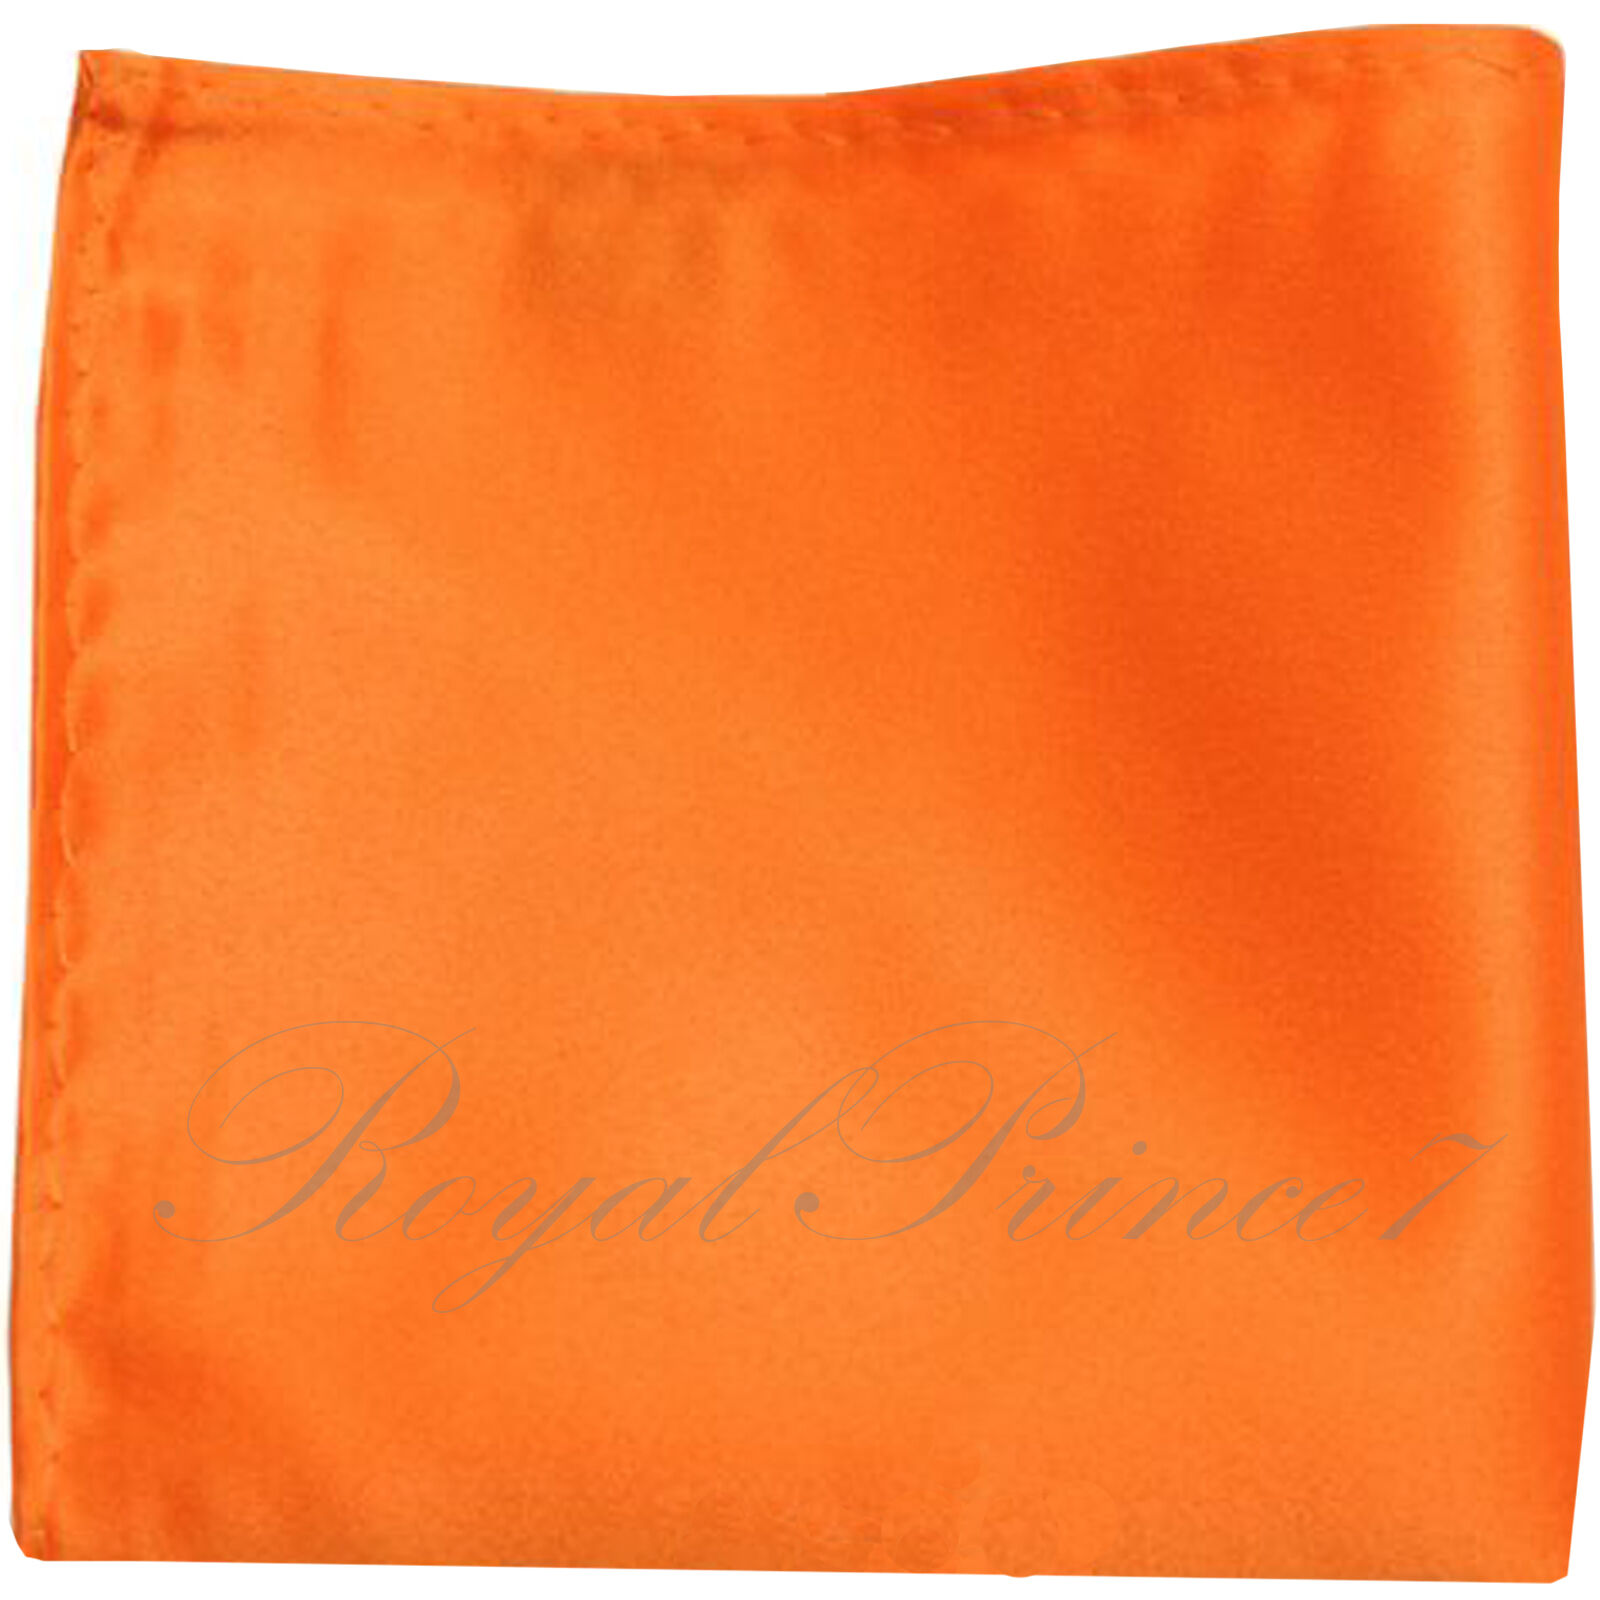 New Men's SOLID Pocket Square Hankie Only Orange 10 x 10 inches